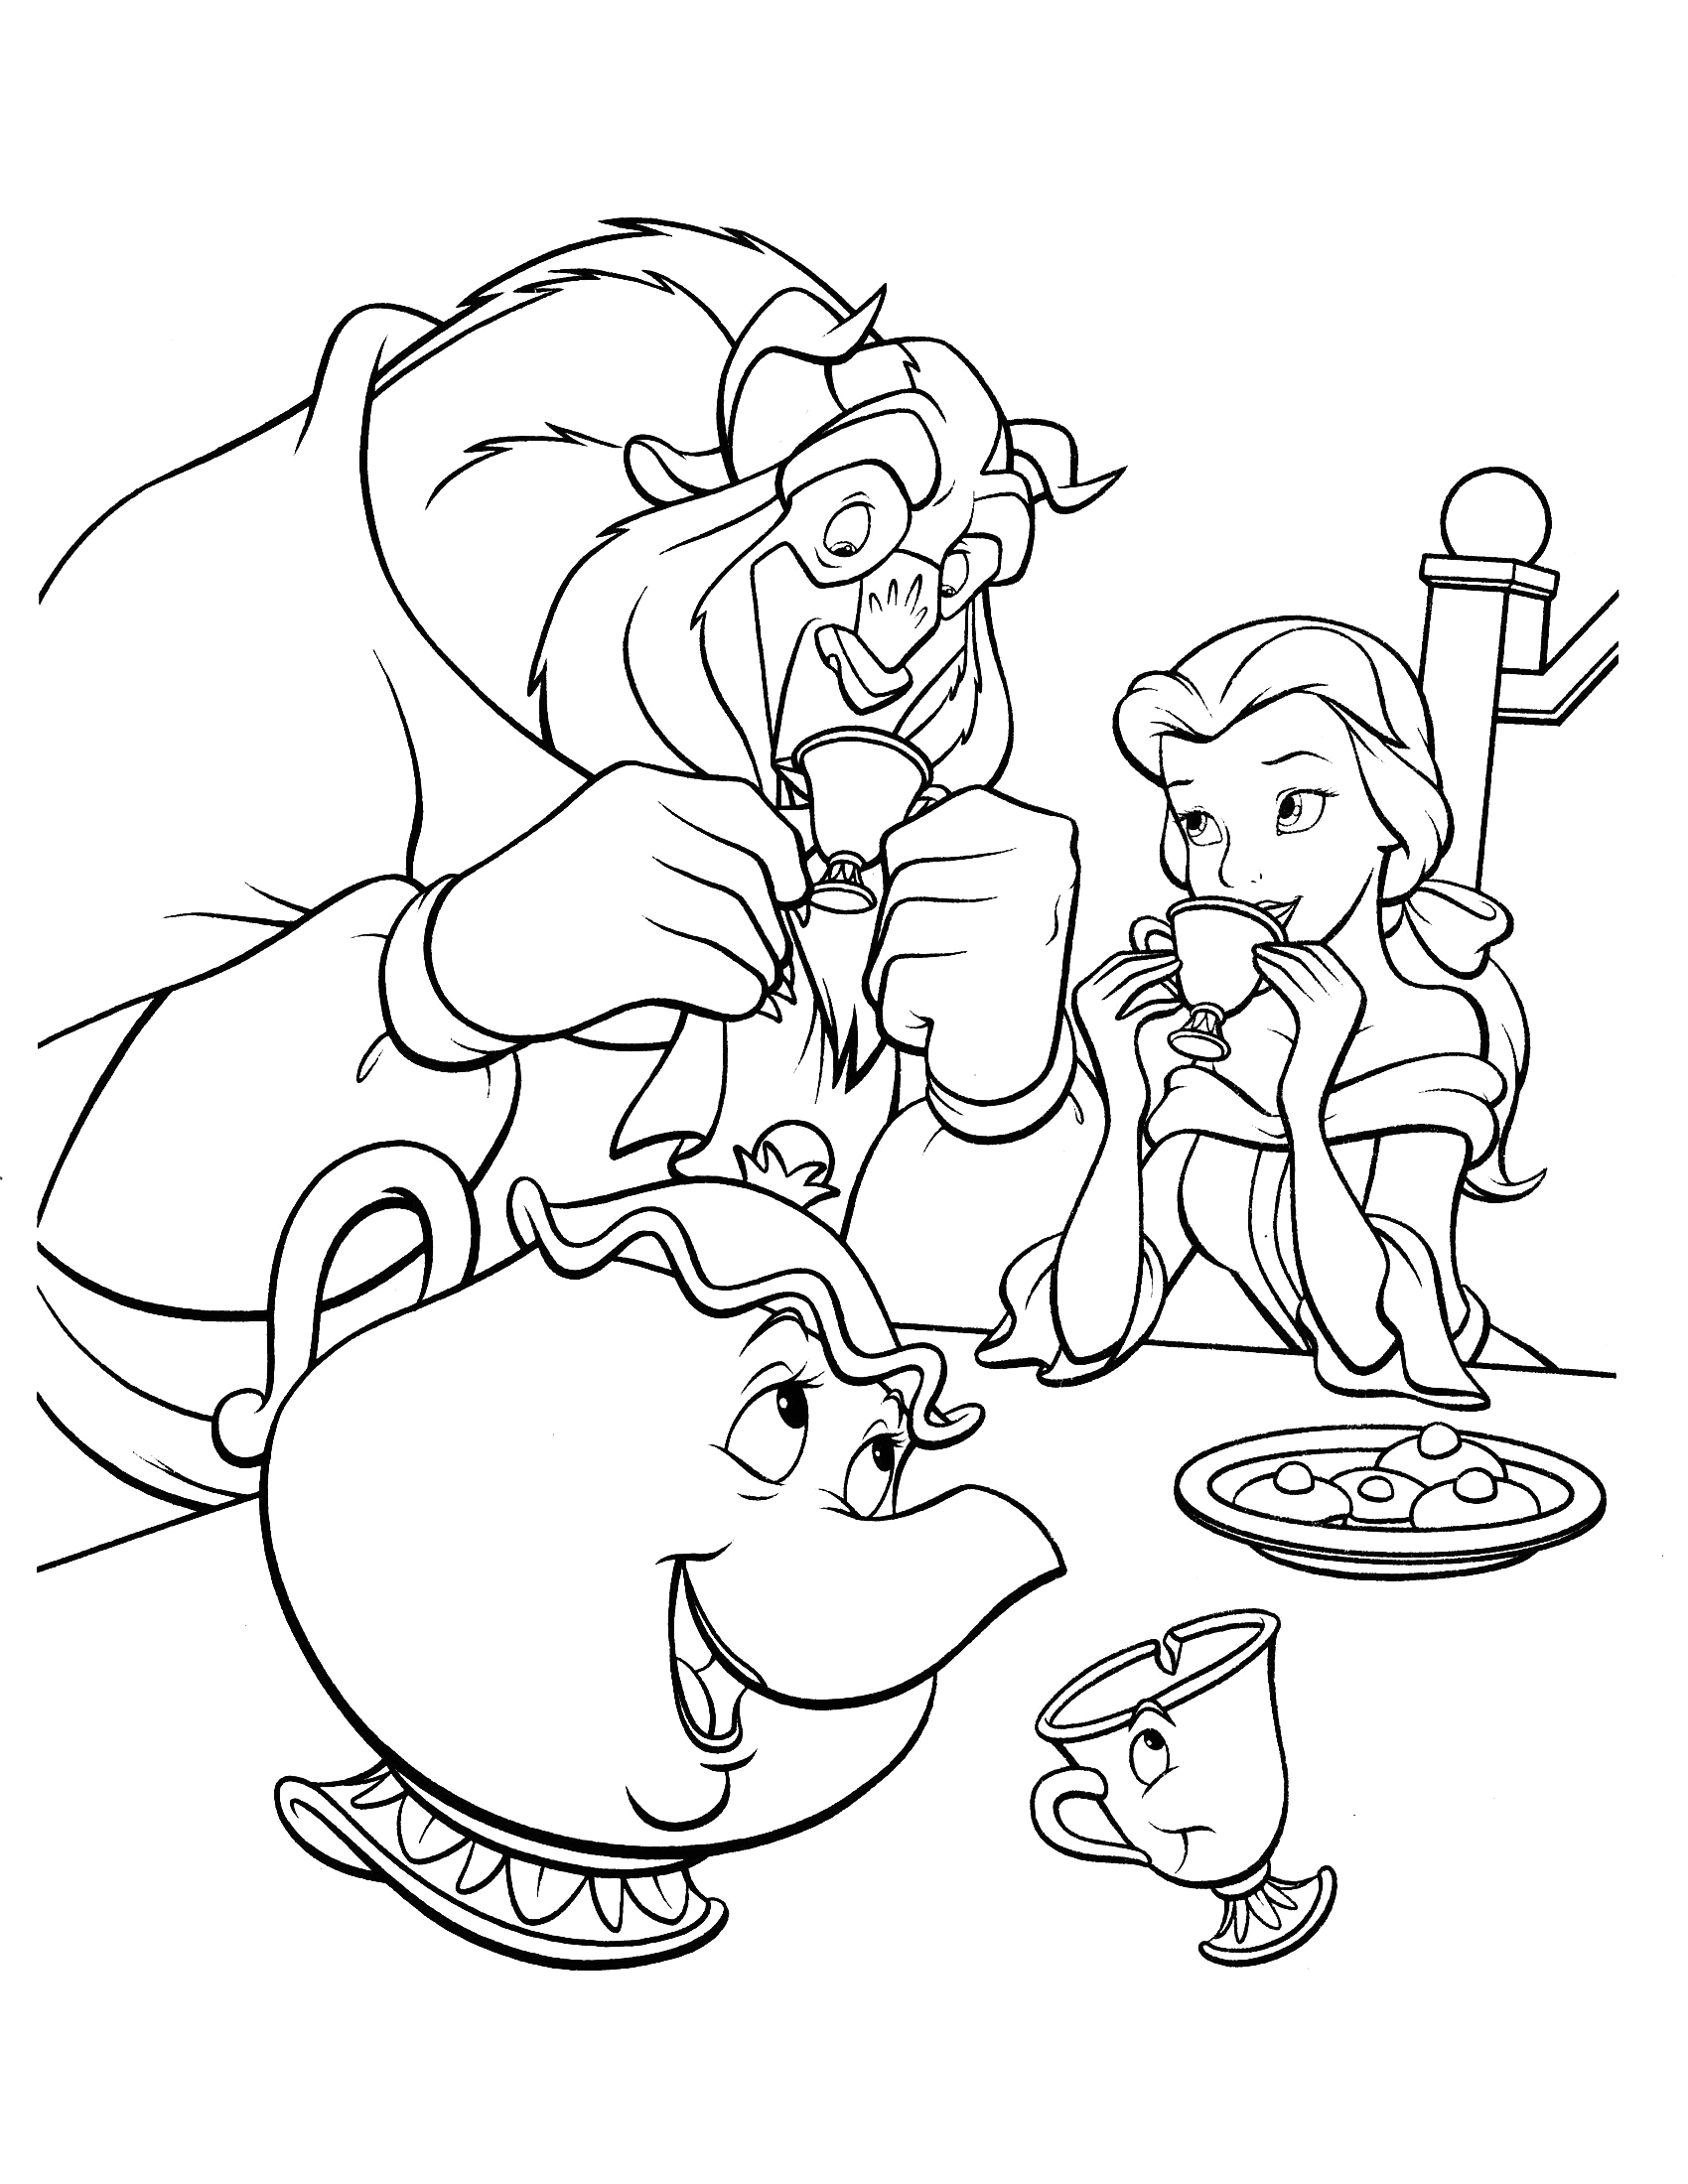 Beauty and the Beast Coloring Pages Pdf Beauty and the Beast Coloring Pages and Book